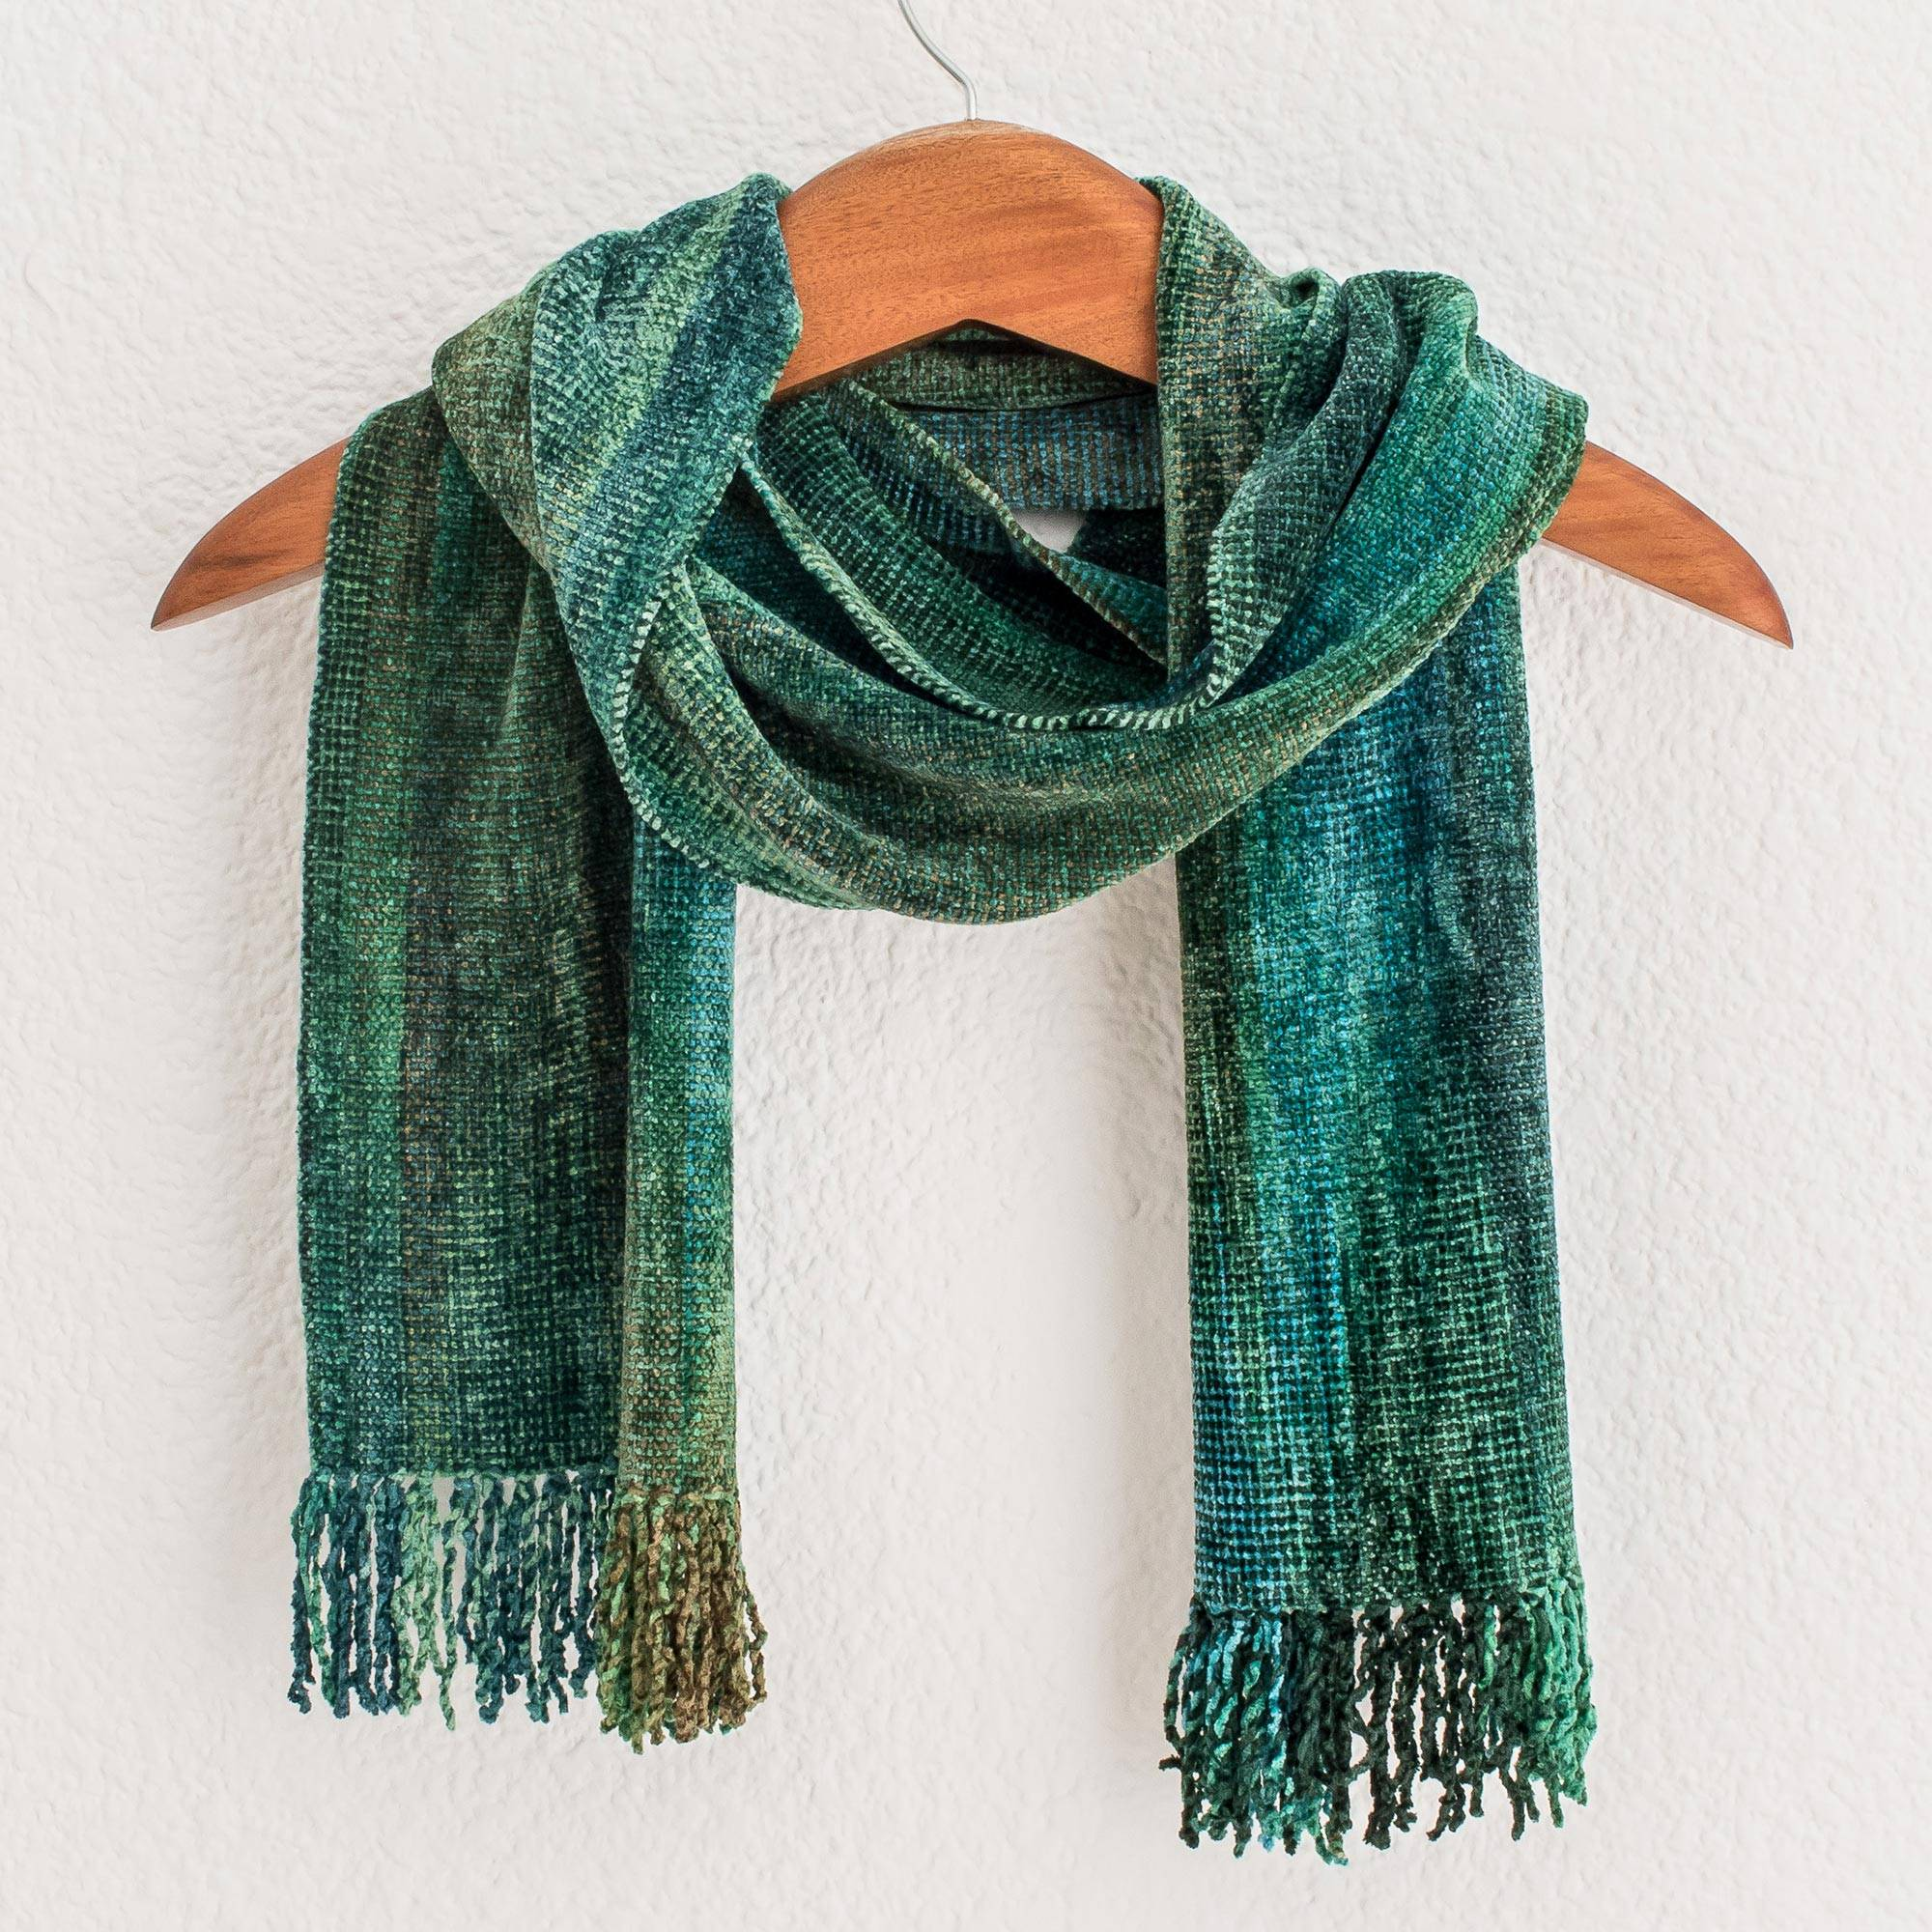 Teal and Blue Backstrap Loom Woven Chenille Scarf, 'Precious Teal'